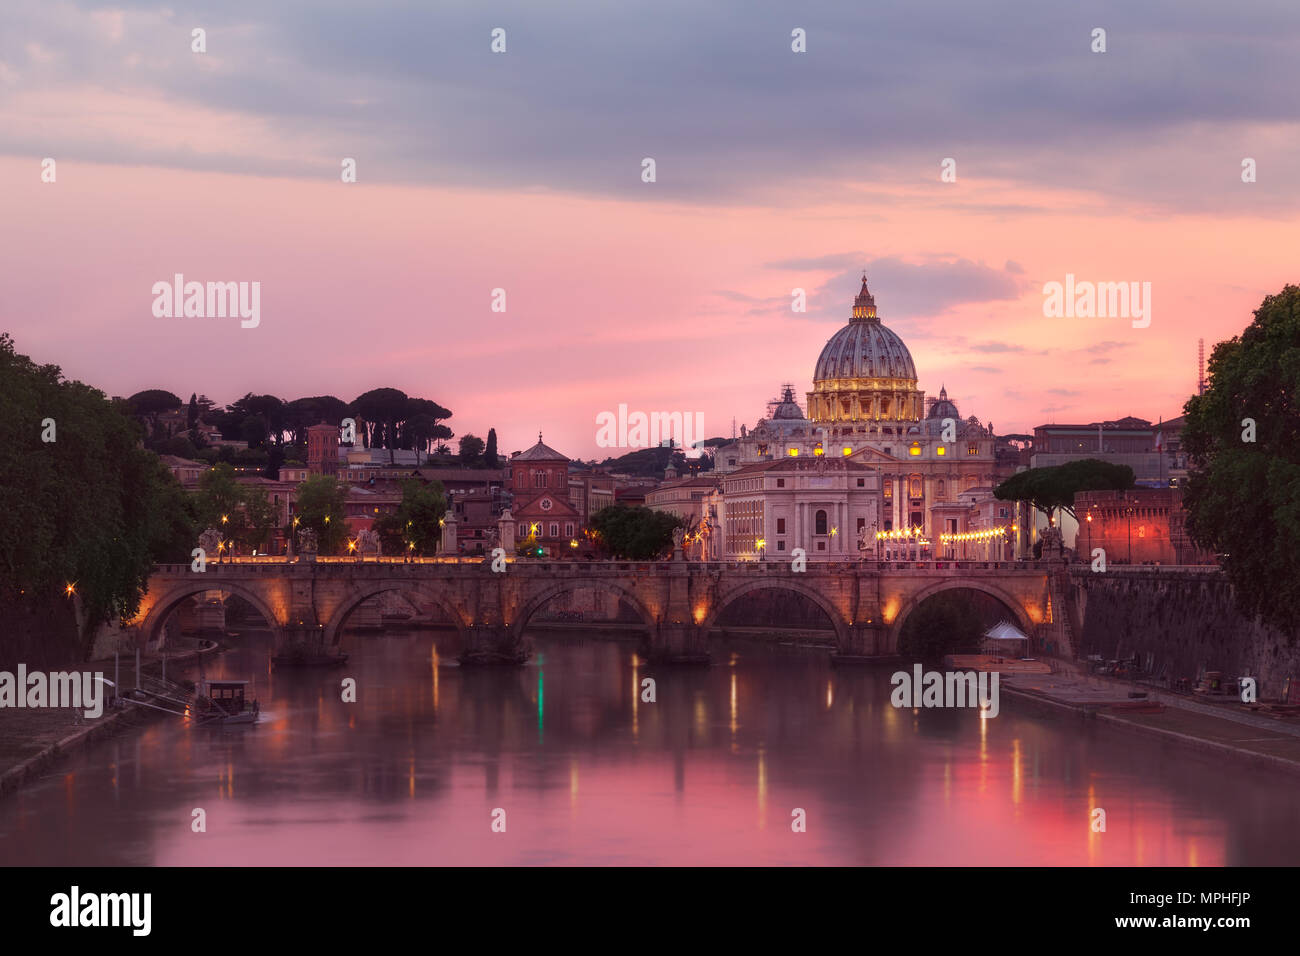 Having the city of Rome nearly to myself is incredible. The rain only trickled lightly but life retreated into the alleyways of the city, leaving myse - Stock Image